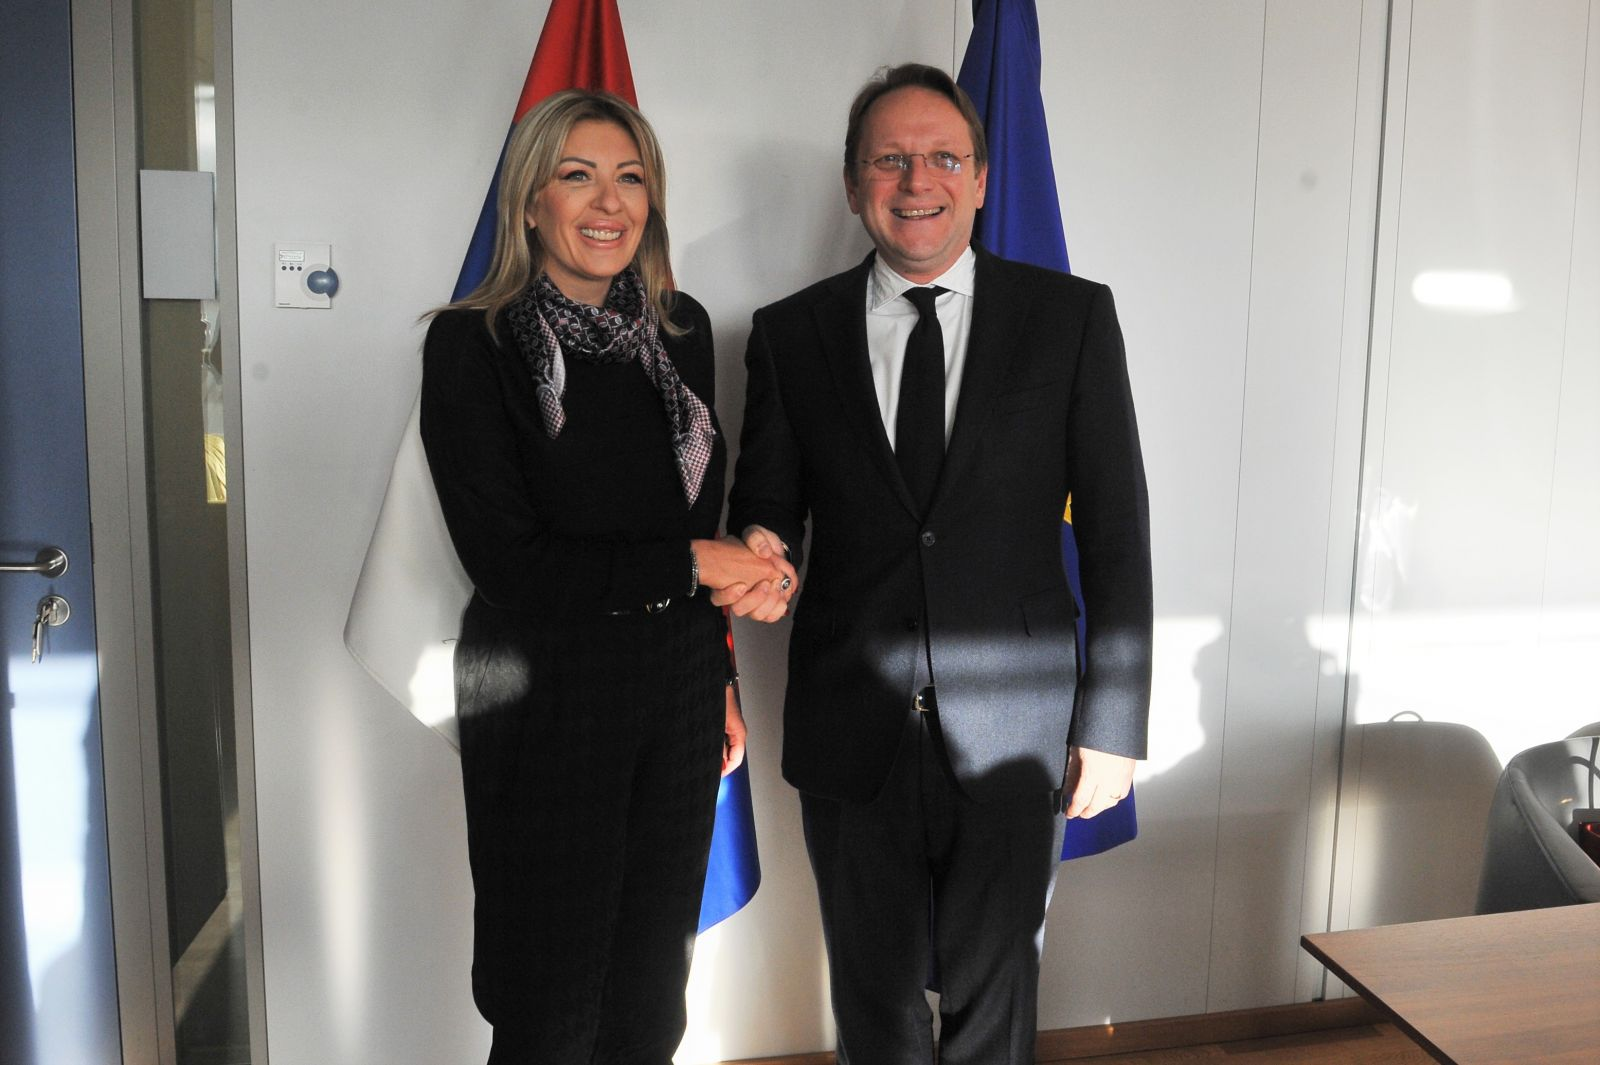 J. Joksimović and Várhelyi: We believe that Serbia can be the first to be ready for membership